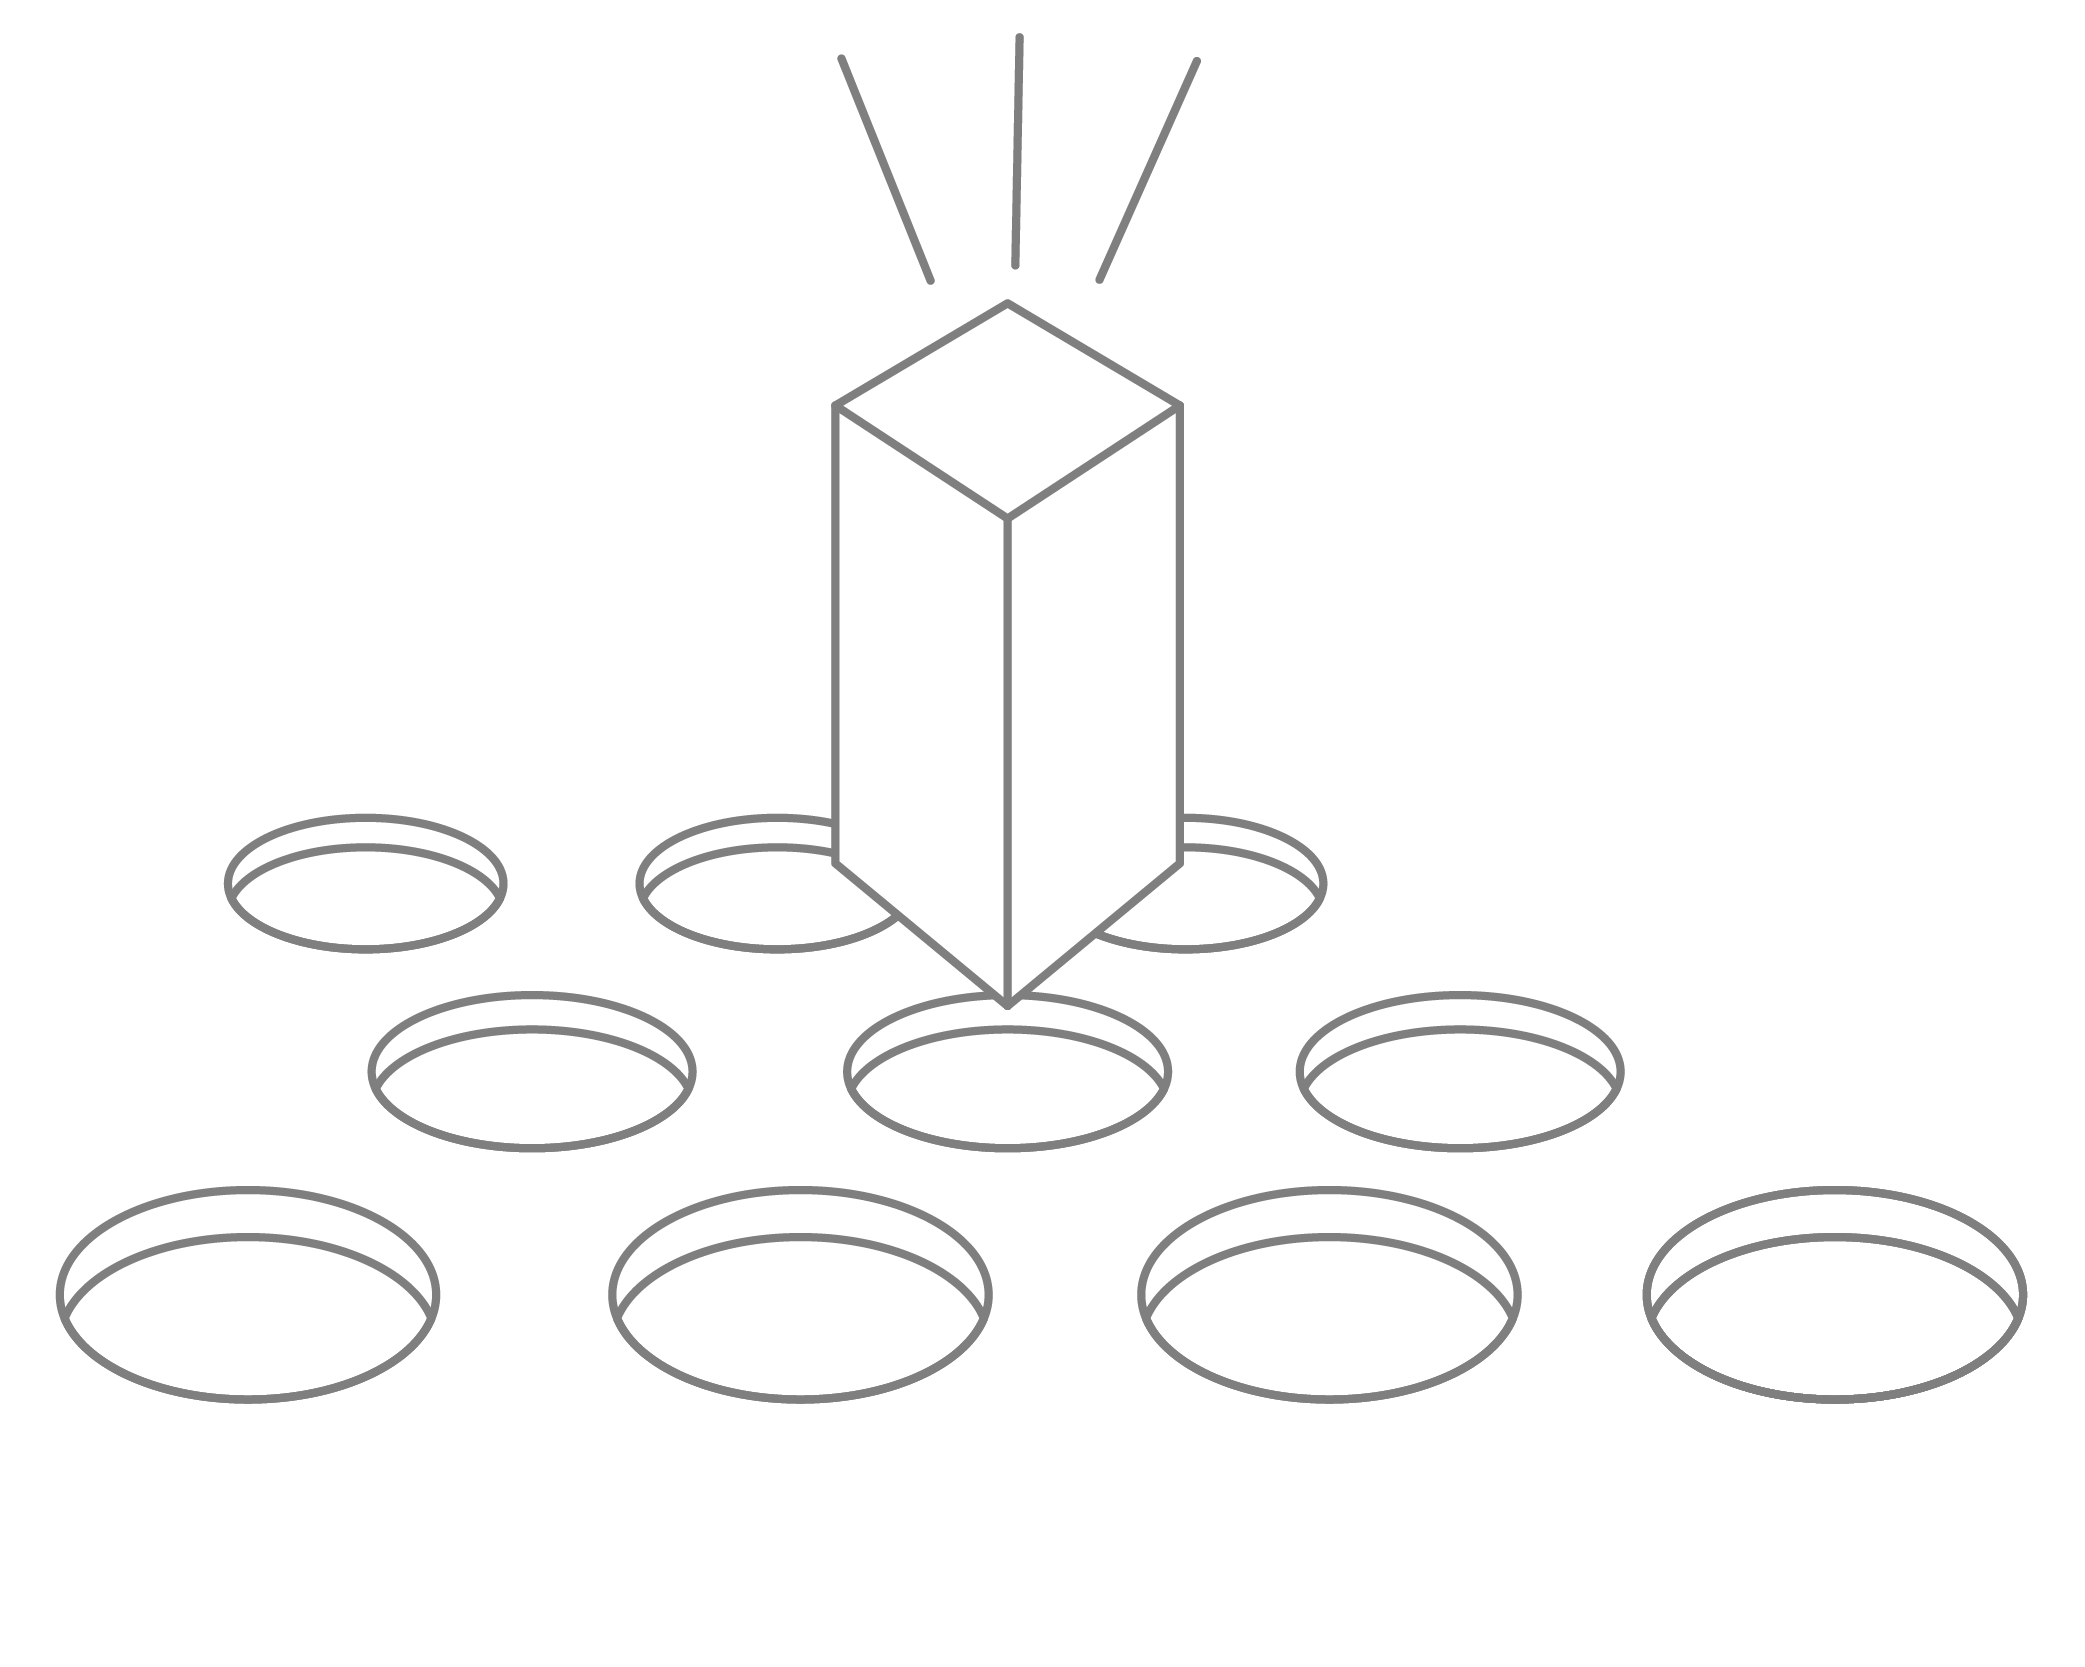 Circular holes with a rectangular shape above